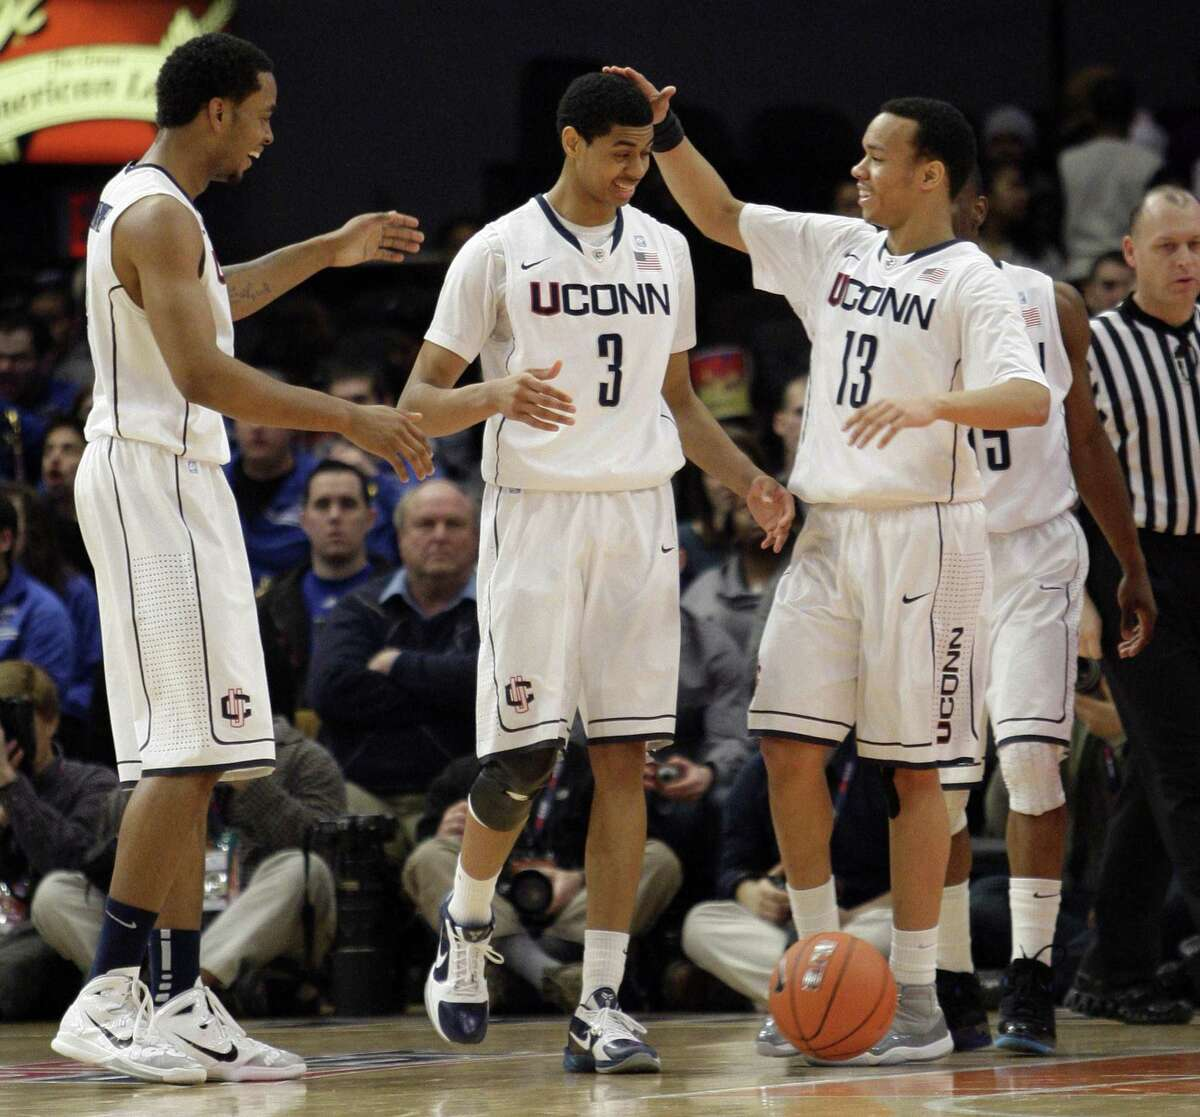 Connecticut's Jeremy Lamb (3) celebrates a basket with teammates Shabazz Napier (13) and Jamal Coombs-McDaniel during the first half of an NCAA college basketball game against DePaul at the Big East Championship, Tuesday, March 8, 2011 at Madison Square Garden in New York. (AP Photo/Mary Altaffer)